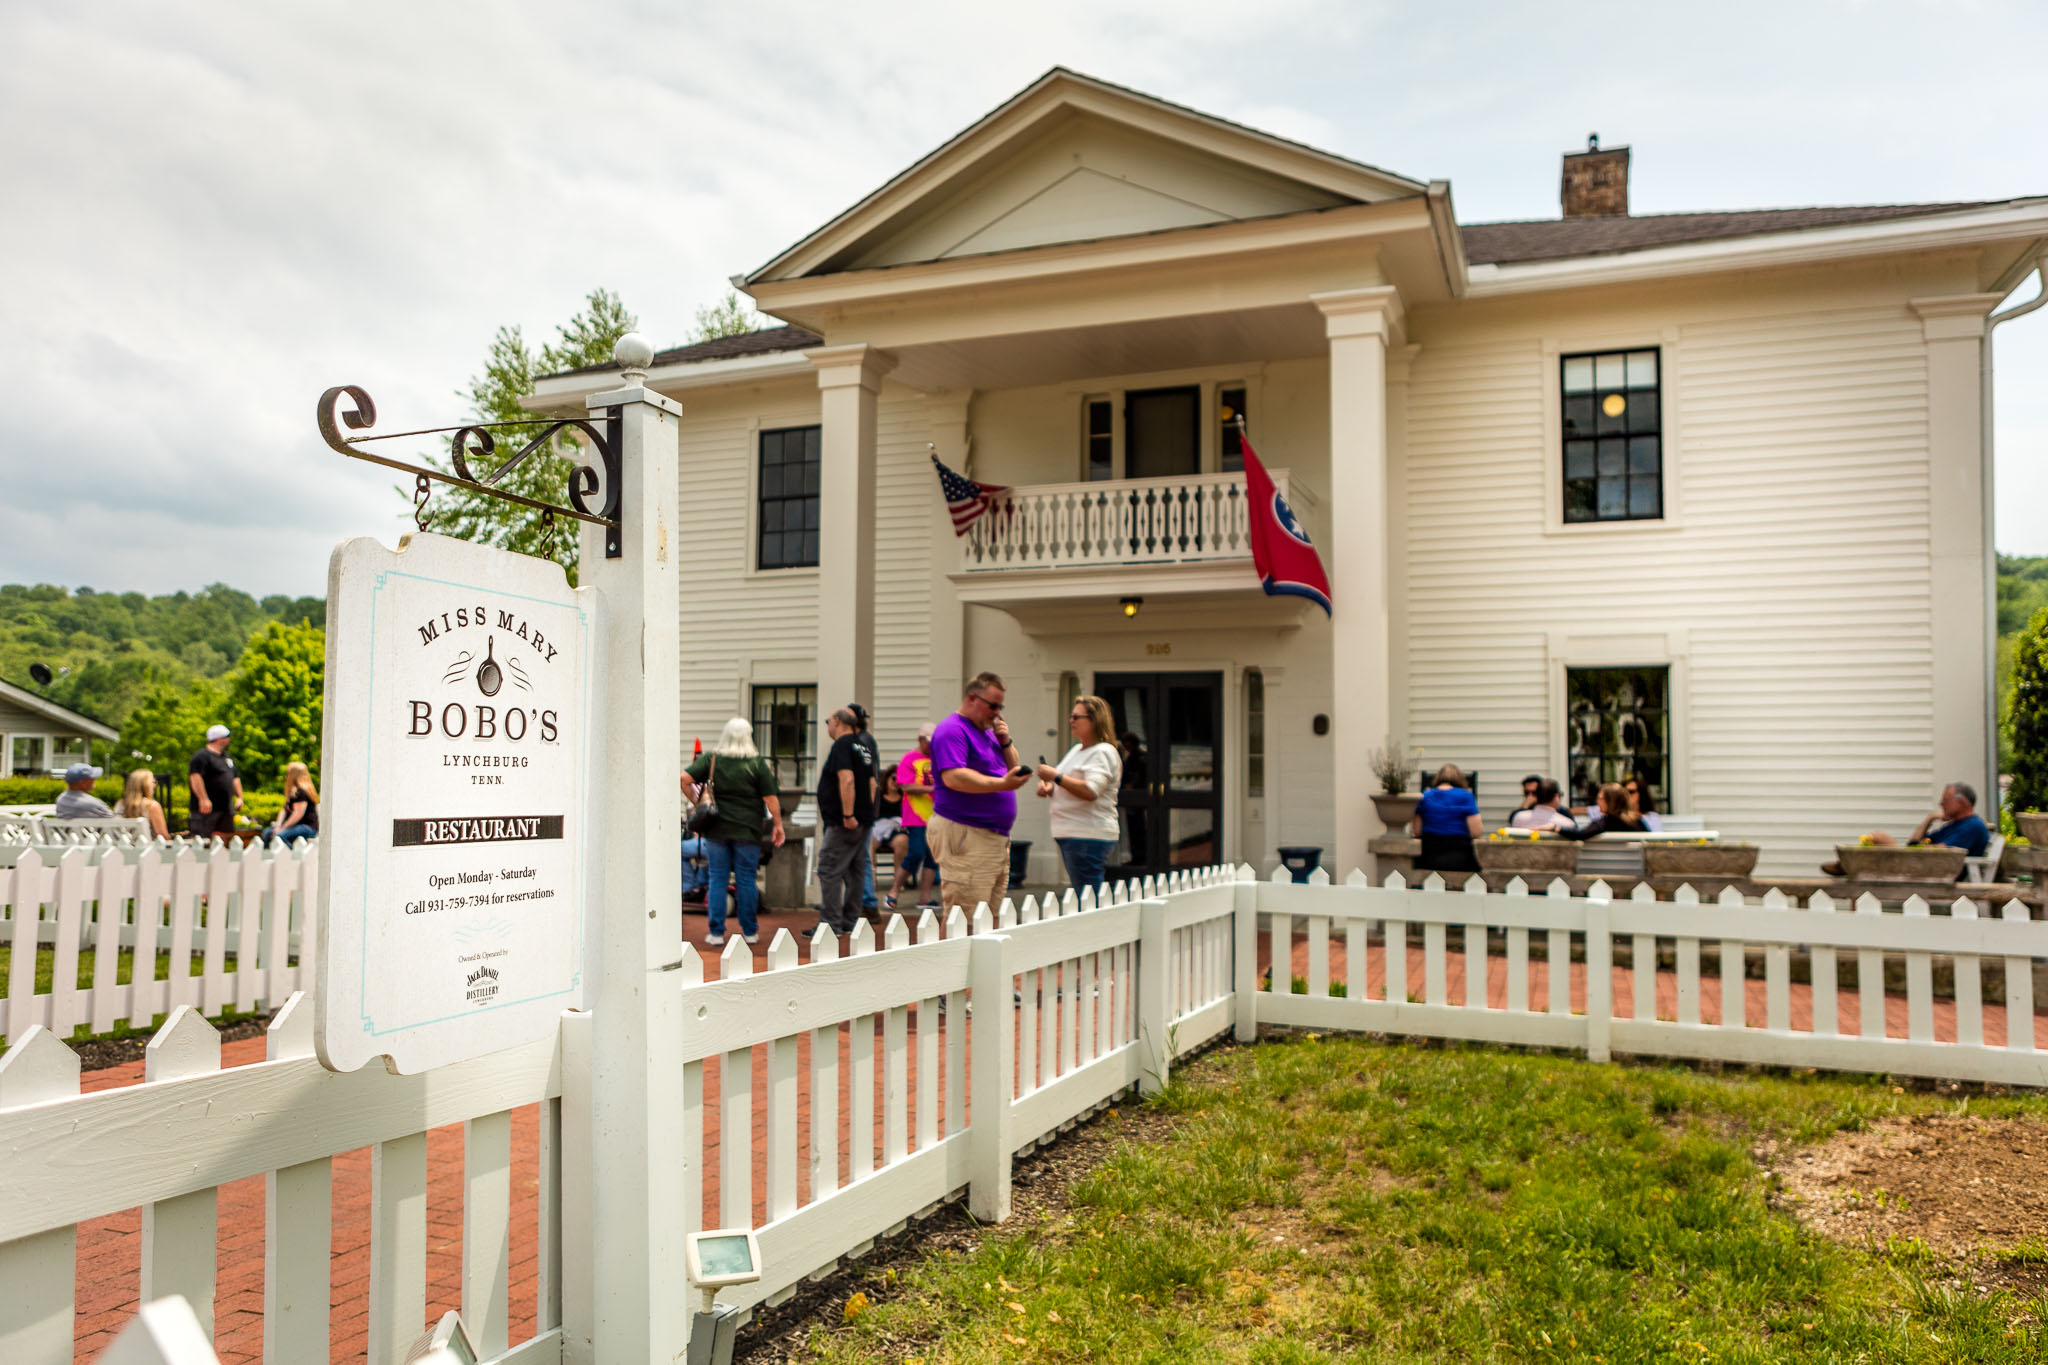 Miss Mary Bobo's Restaurant in Lynchburg, TN